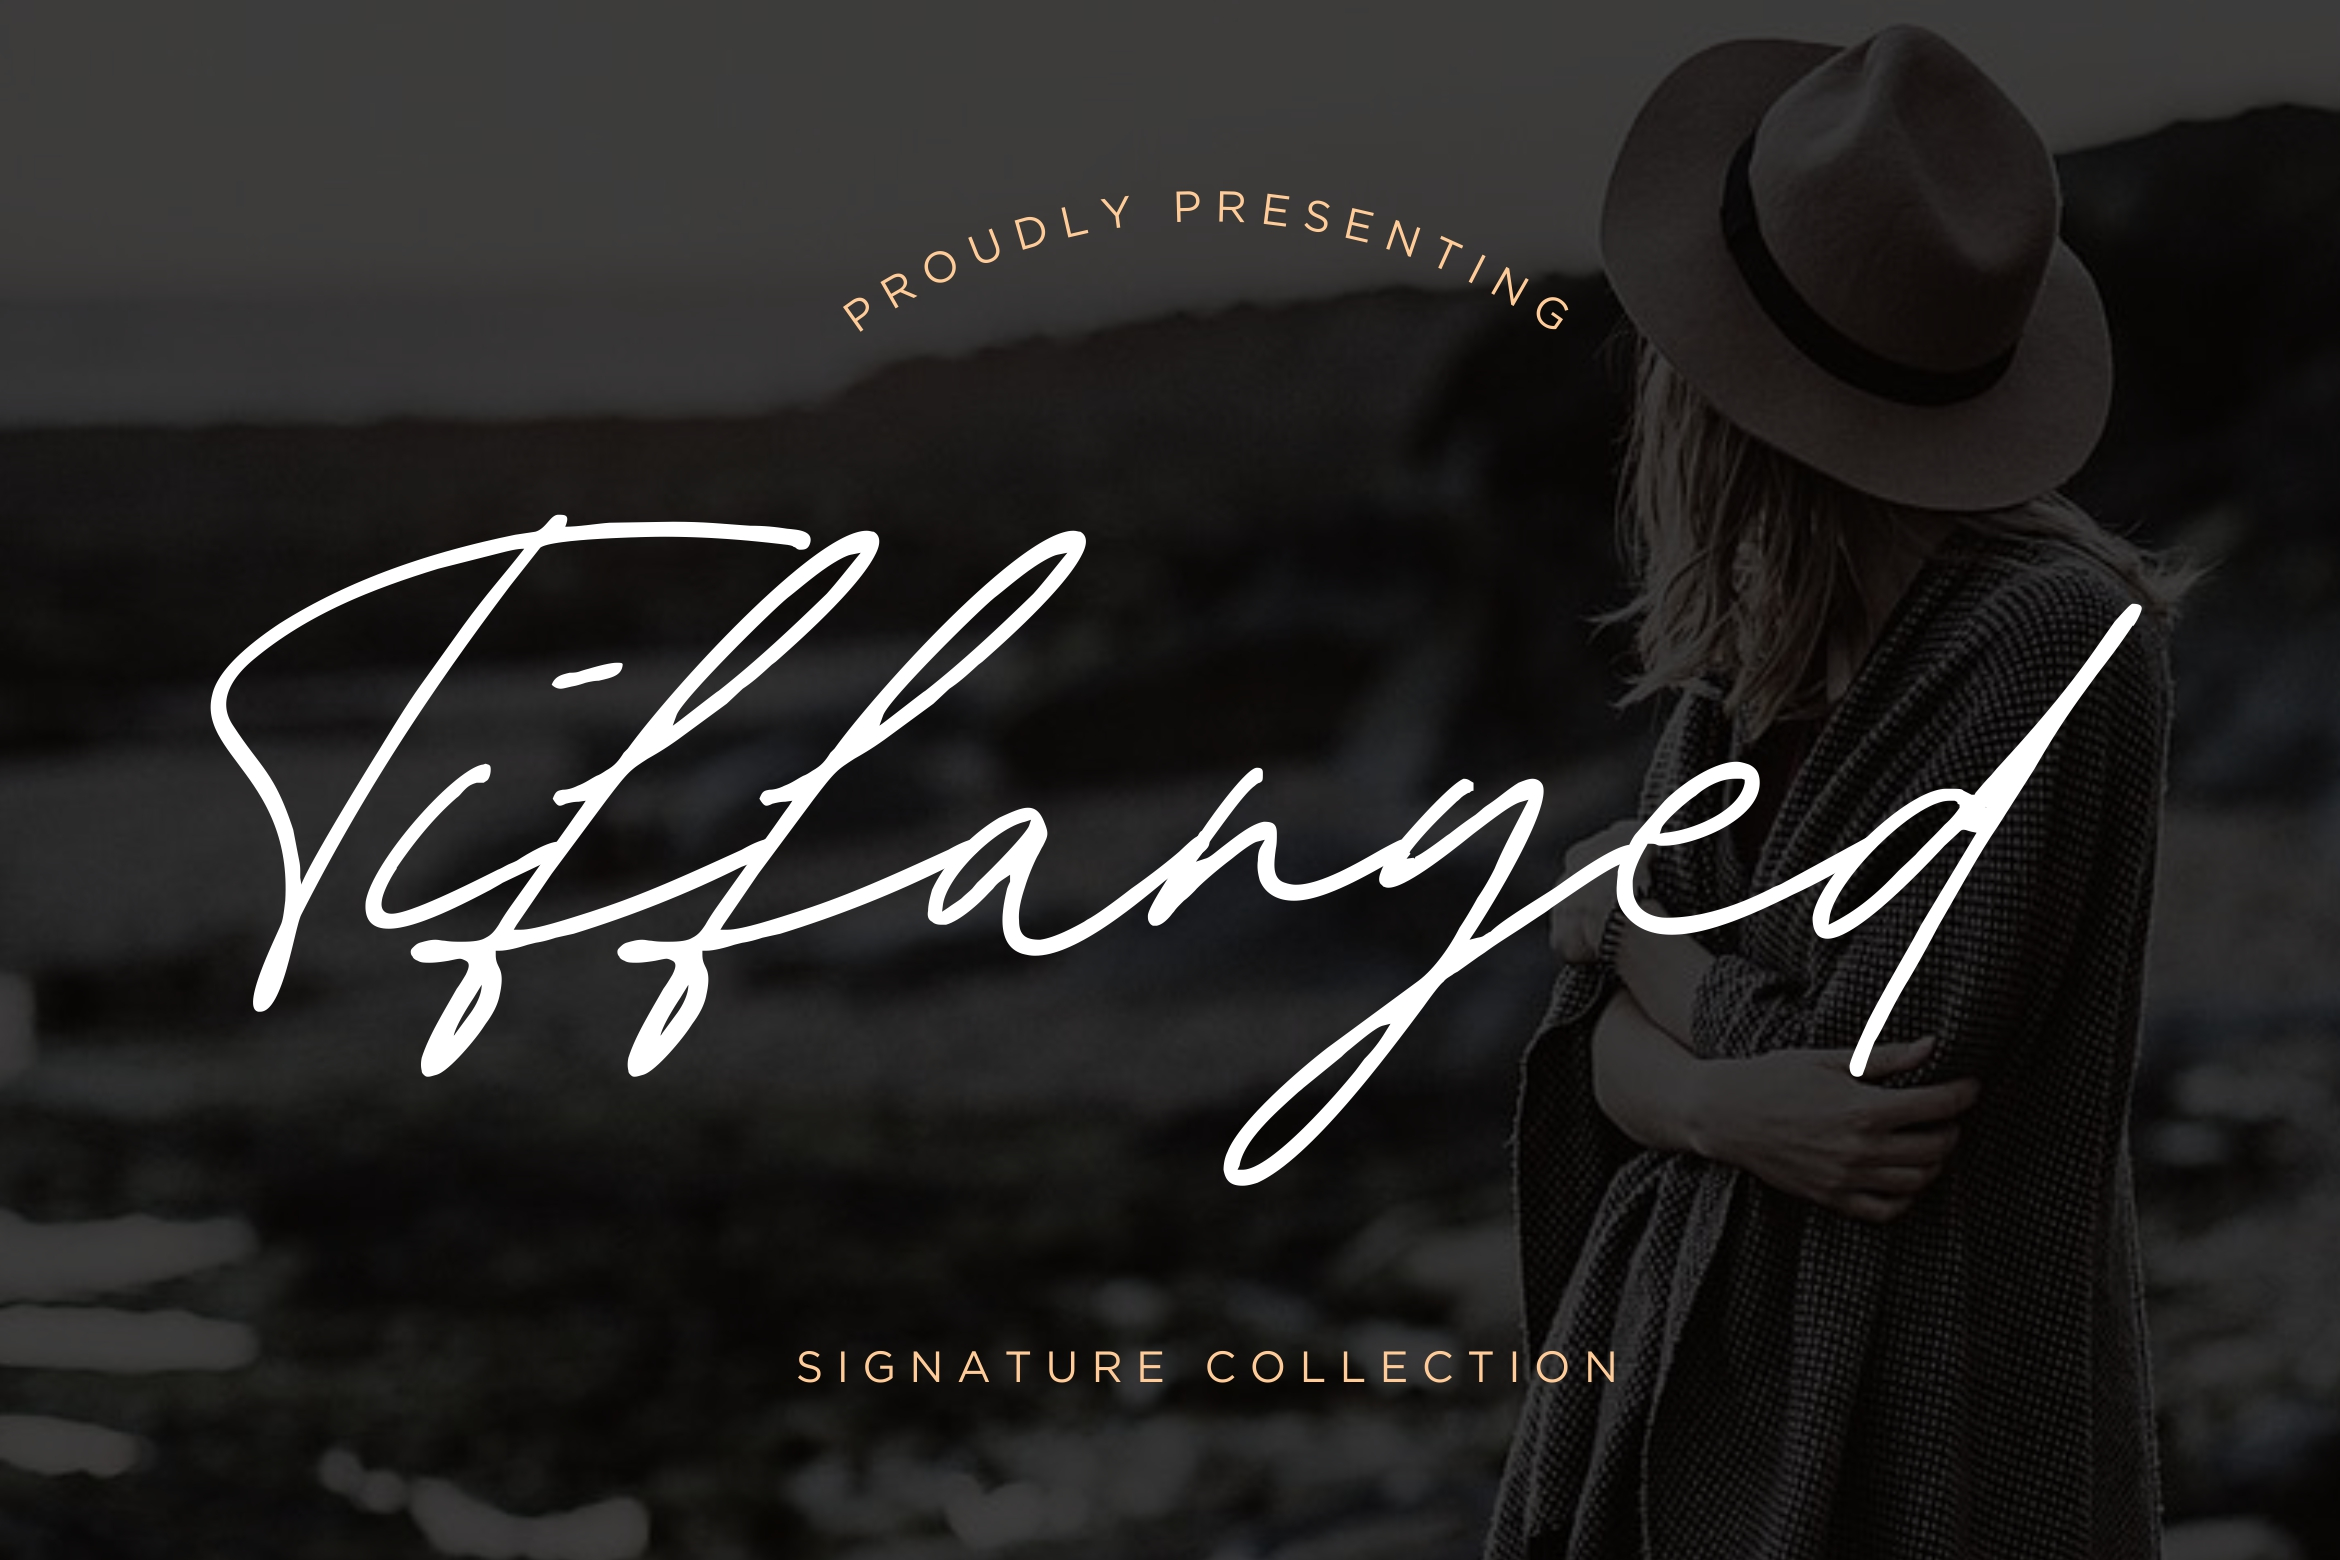 Download Tiffanyed Signature Collection - Free Fonts, Script ...